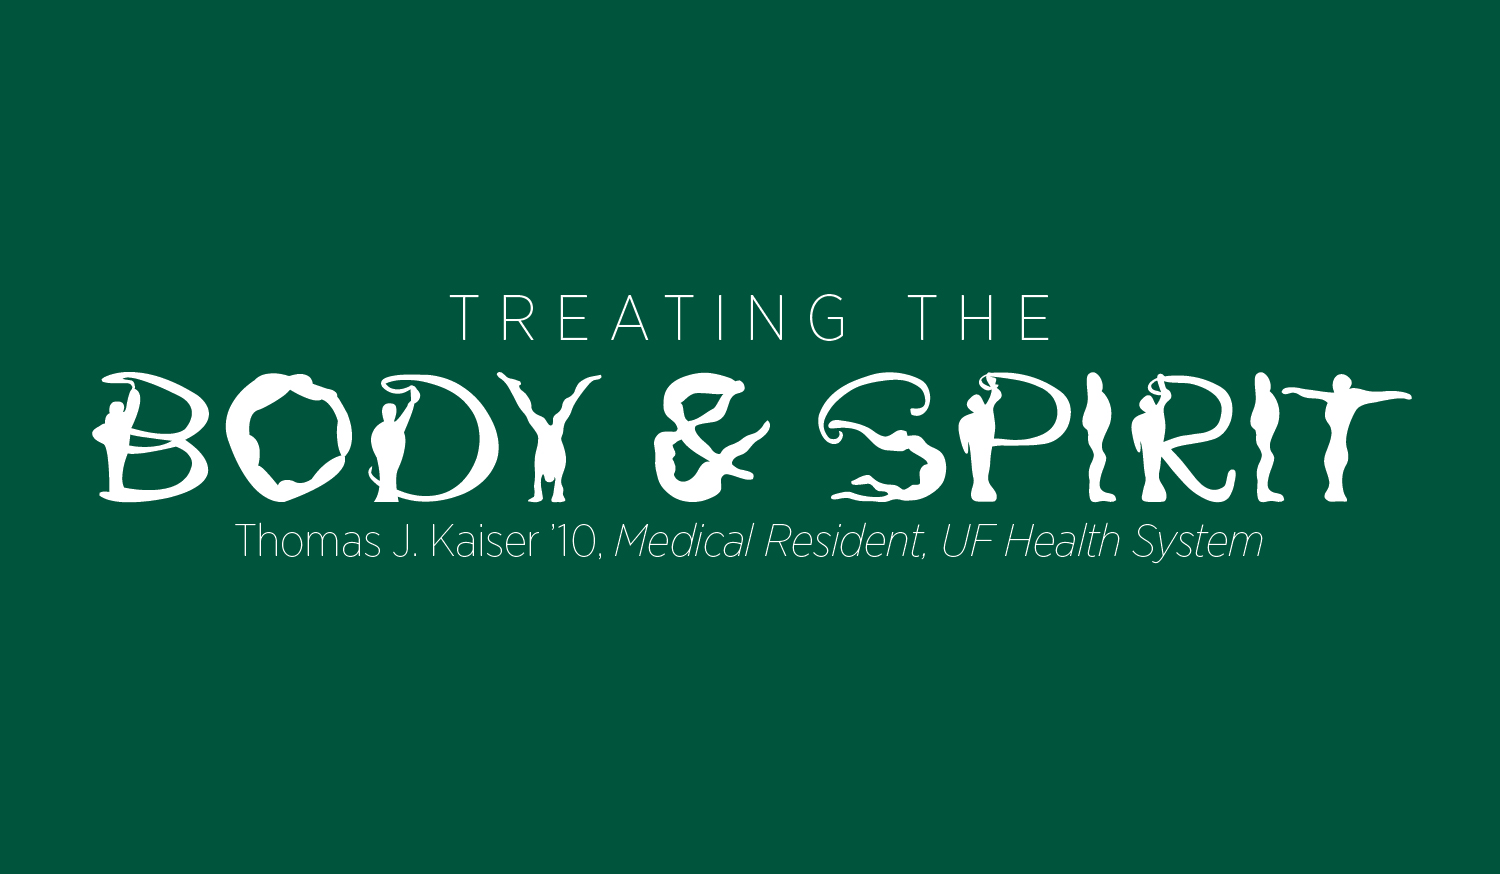 Treating the Body and Spirit: Thomas Kaiser '10